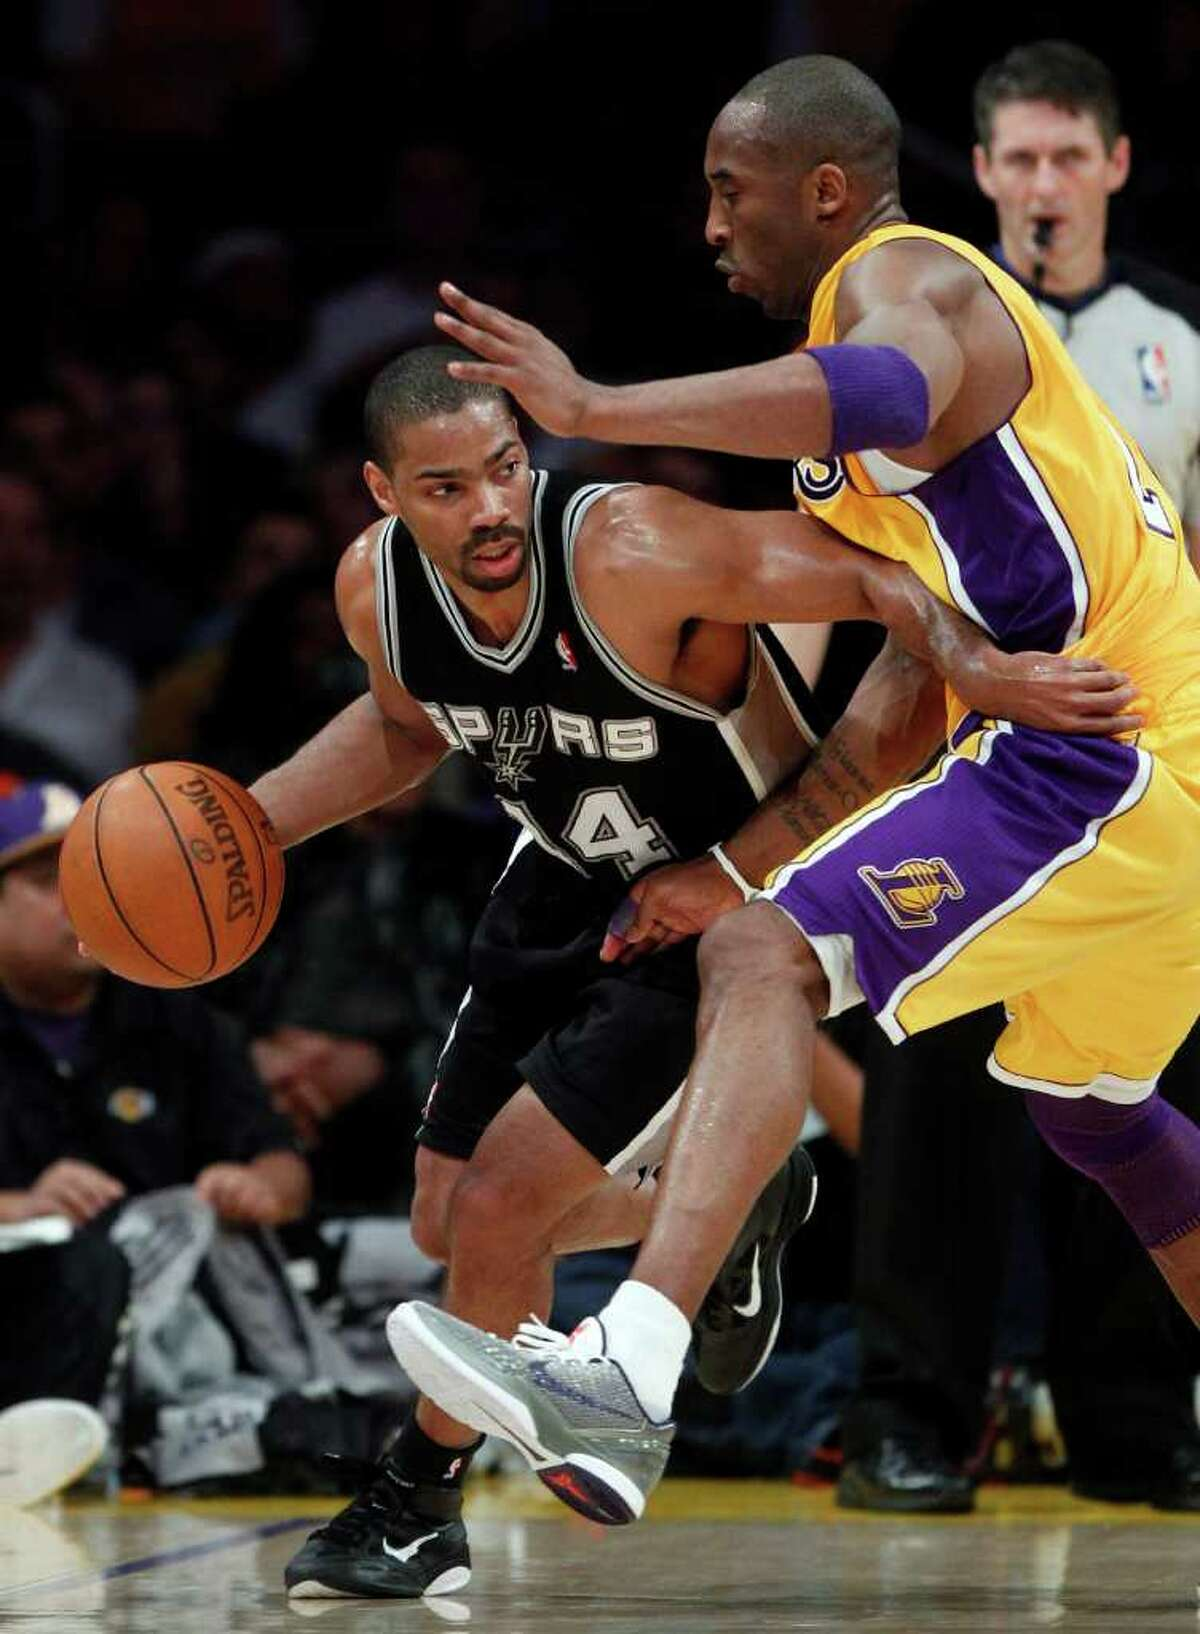 San Antonio Spurs' Gary Neal, left, drives around Los Angeles Lakers' Kobe Bryant during the first half of an NBA basketball game in Los Angeles, Tuesday, April 12, 2011.